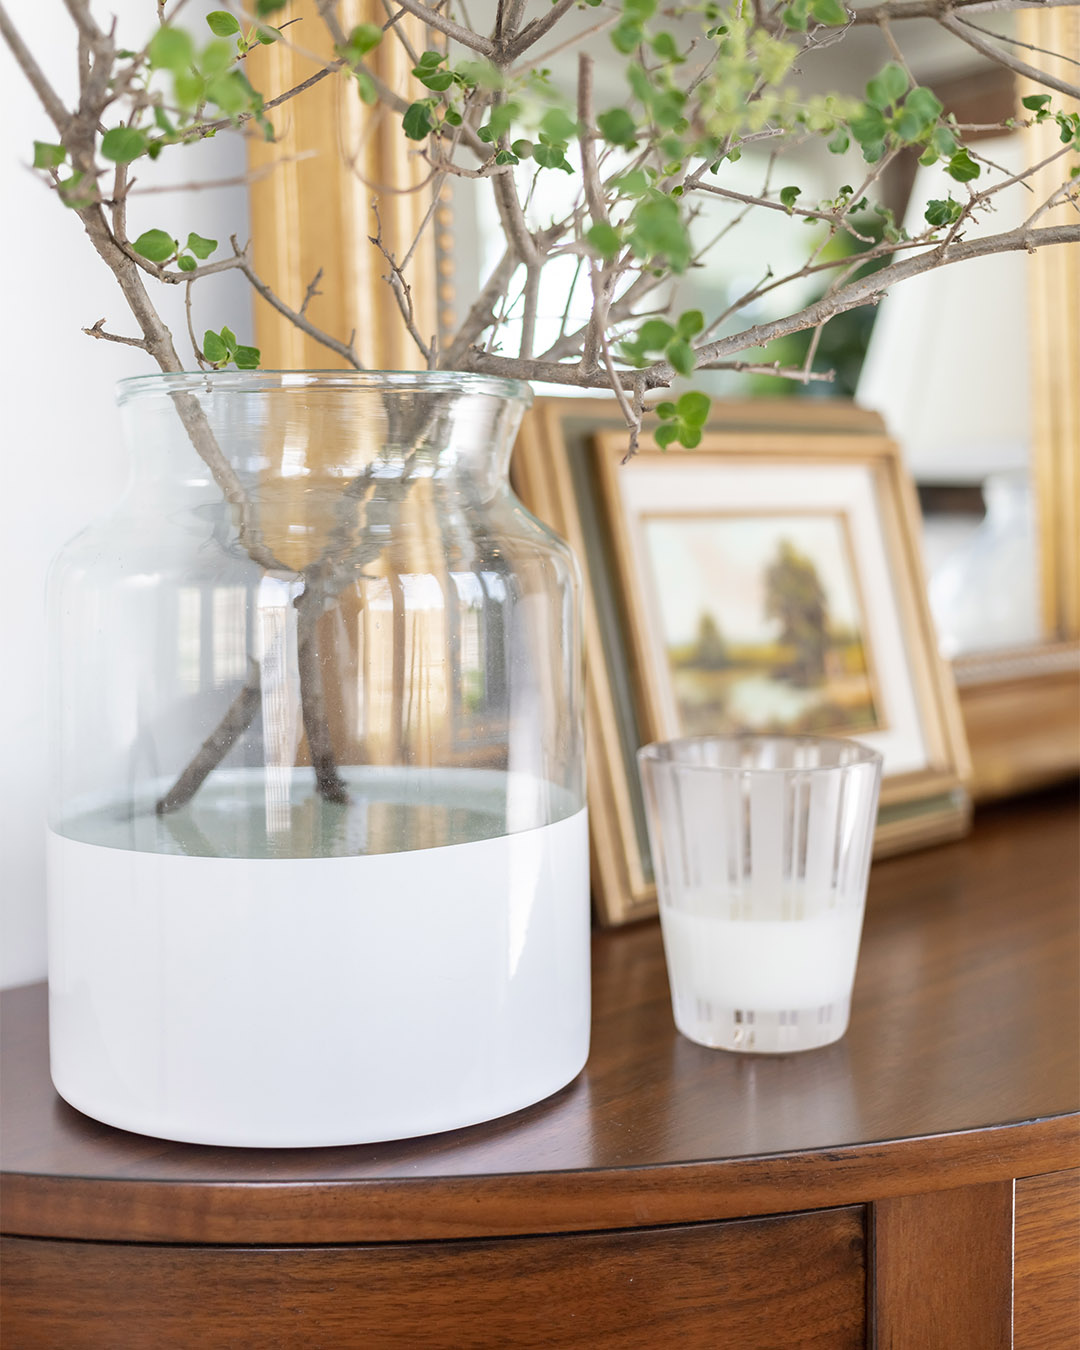 The Etu Home Colorblock vase is everywhere lately. This super popular vase is quite an investment, but is it worth it? I bought one and today I'll tell you what I think.